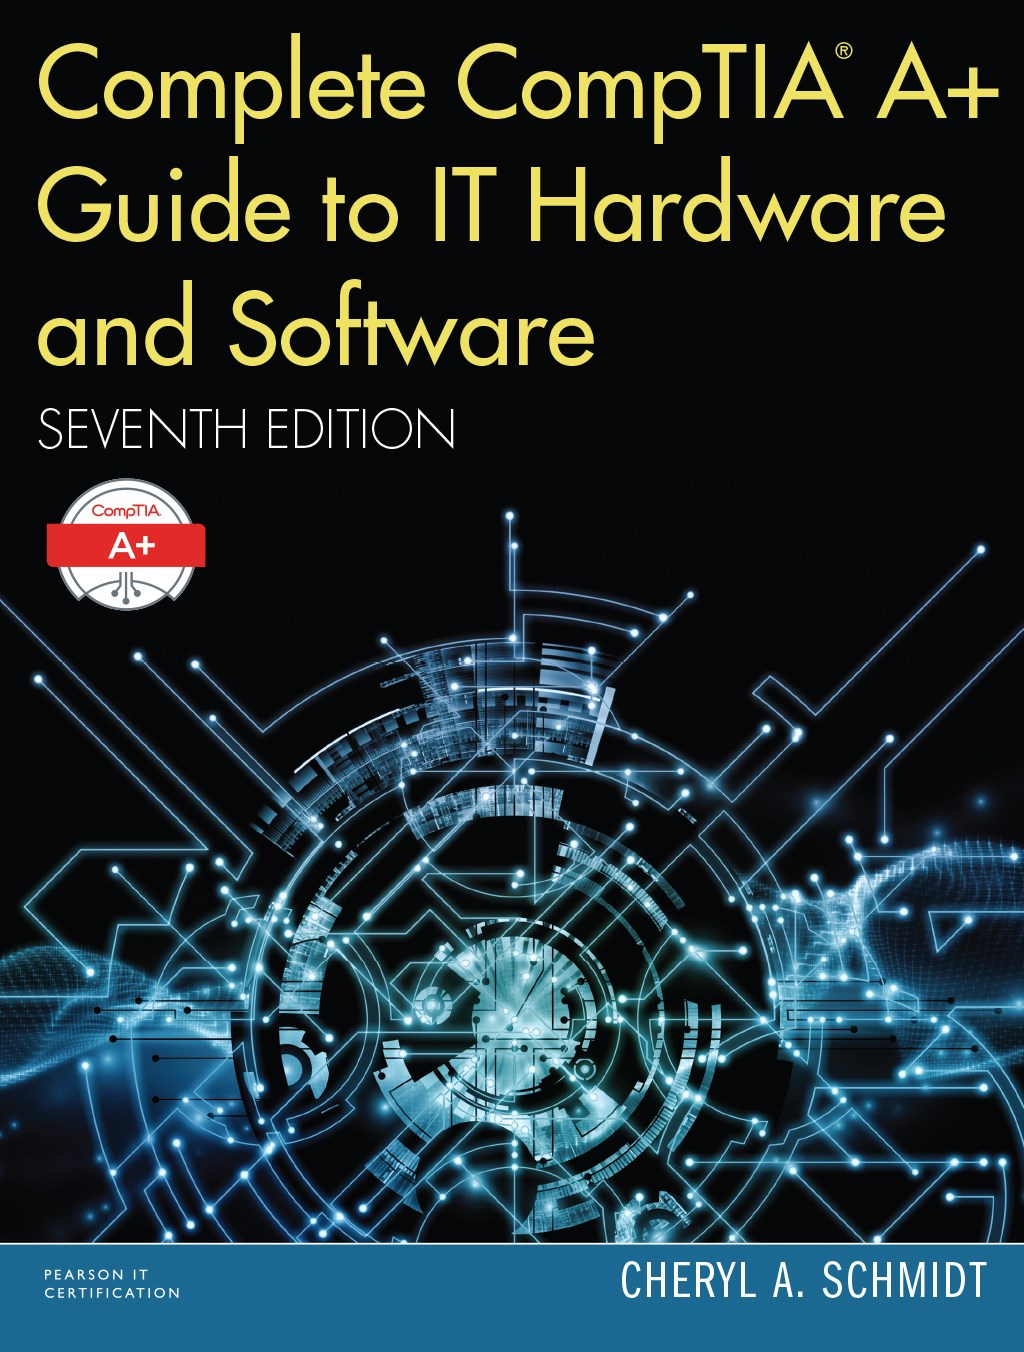 Complete CompTIA A+ Guide to IT Hardware and Software, 7th Edition.